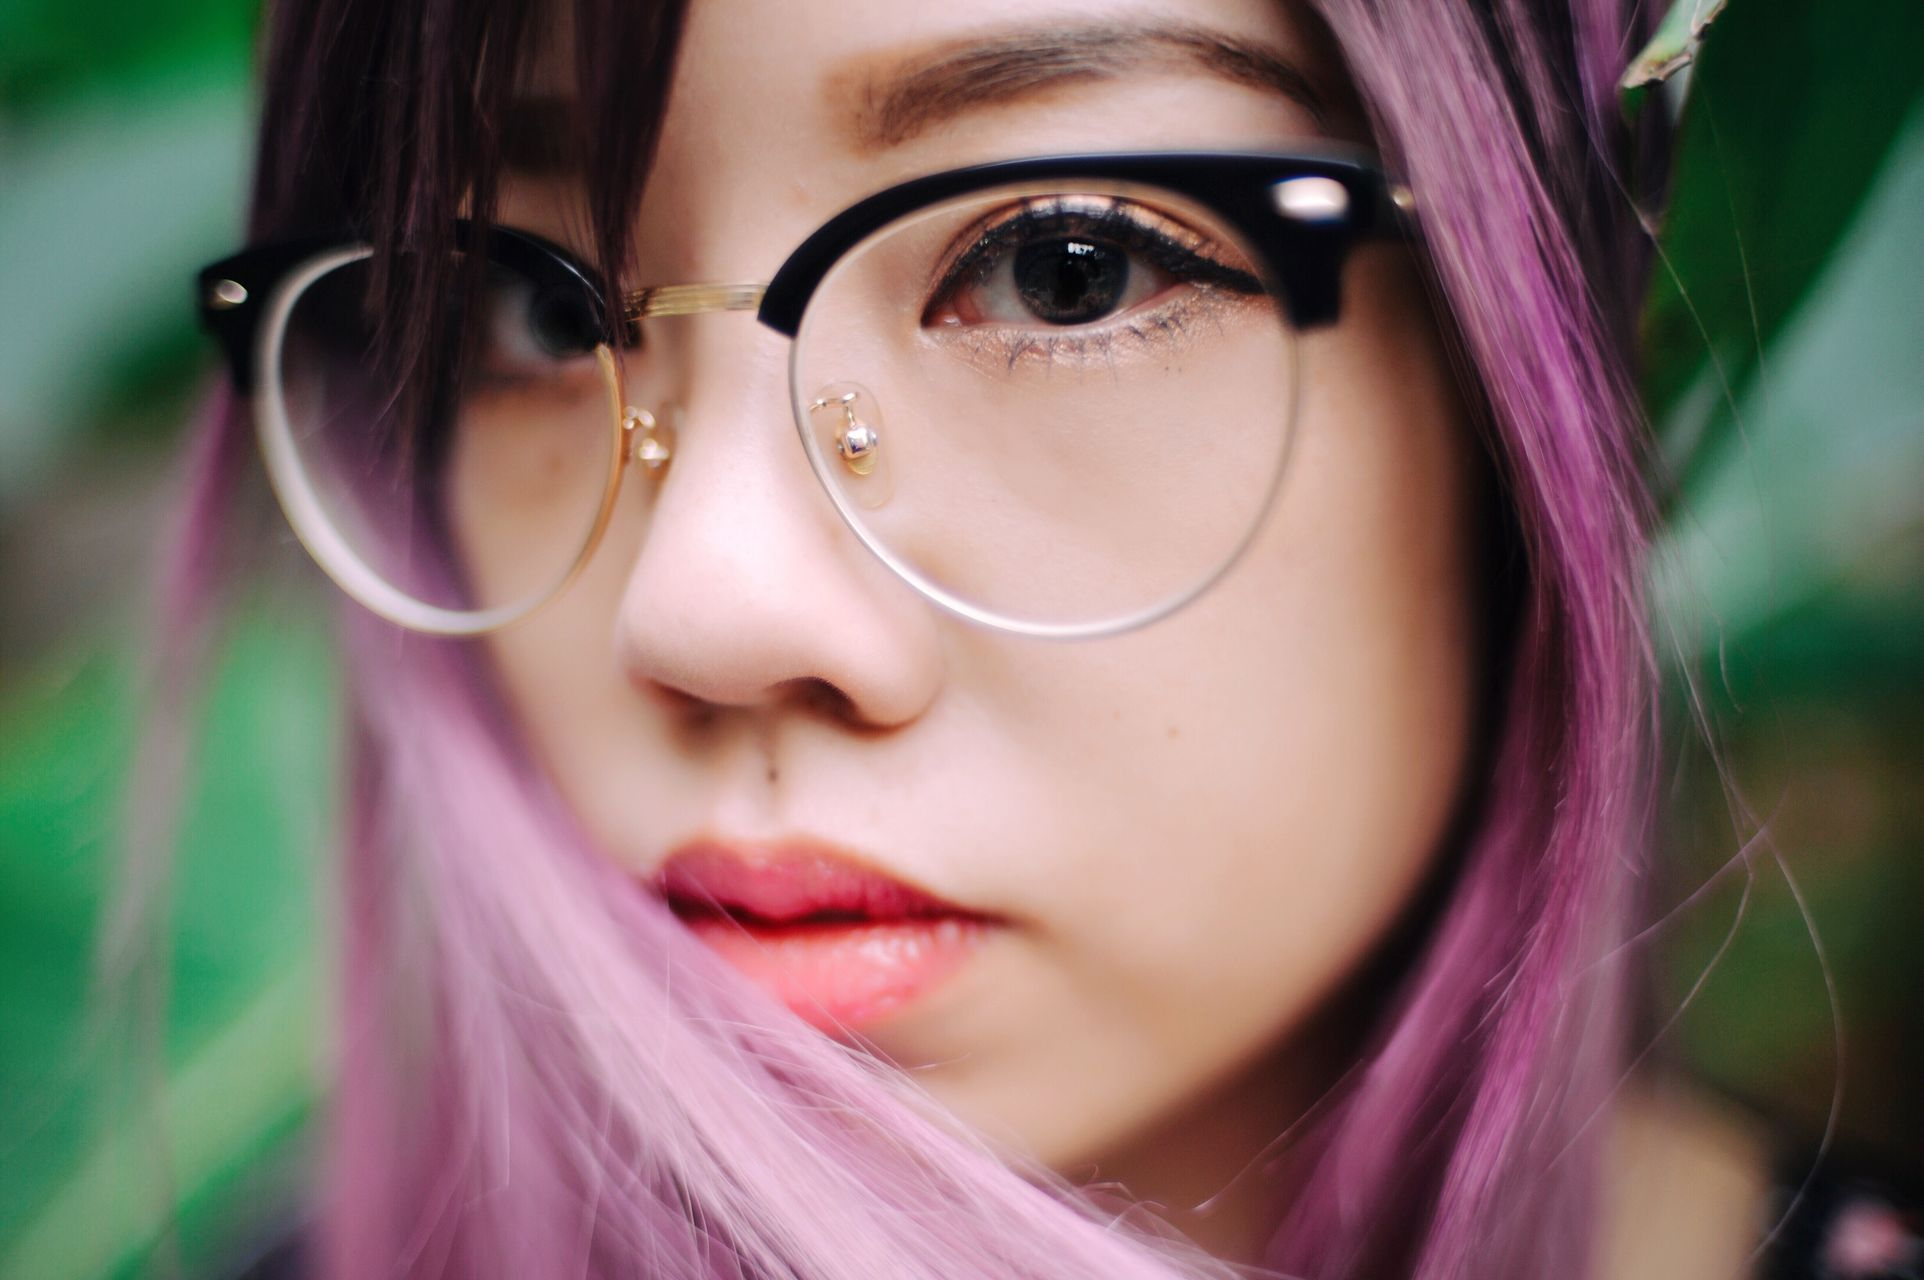 Youth young adult close-up young women human face real people eyeglasses beautiful woman human eye portrait outdoors one person day